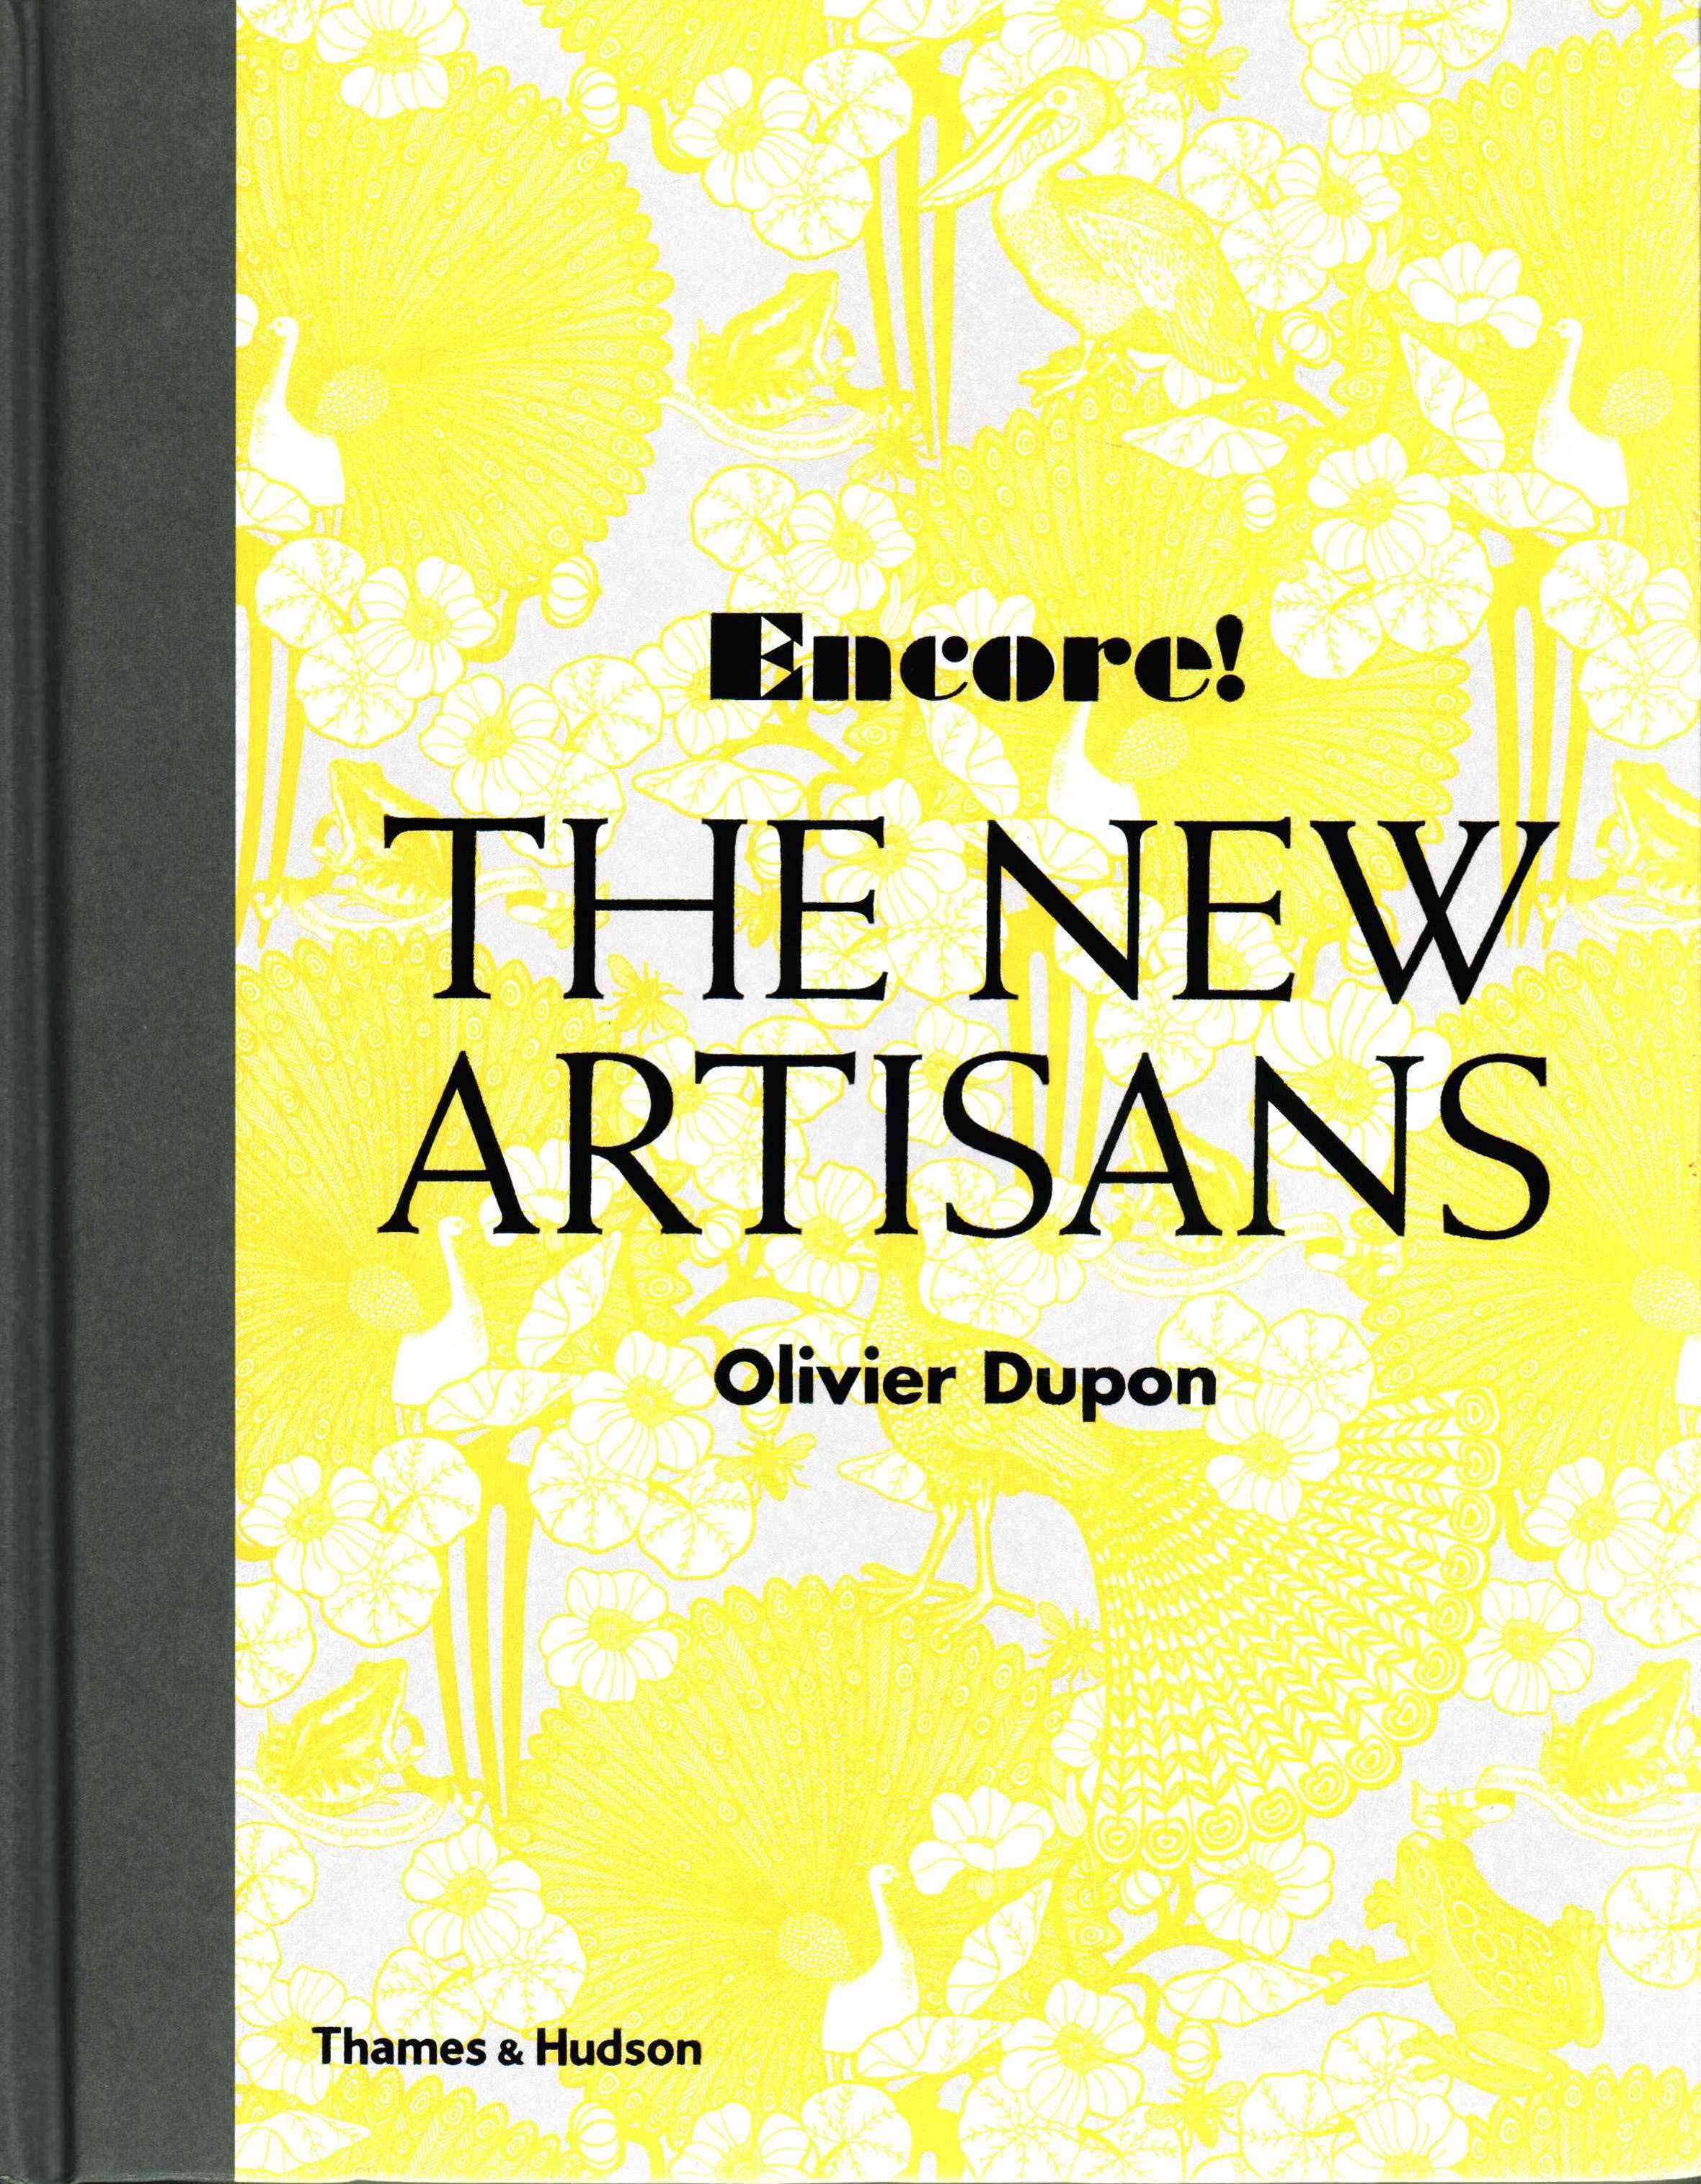 Encore!: The New Artisans